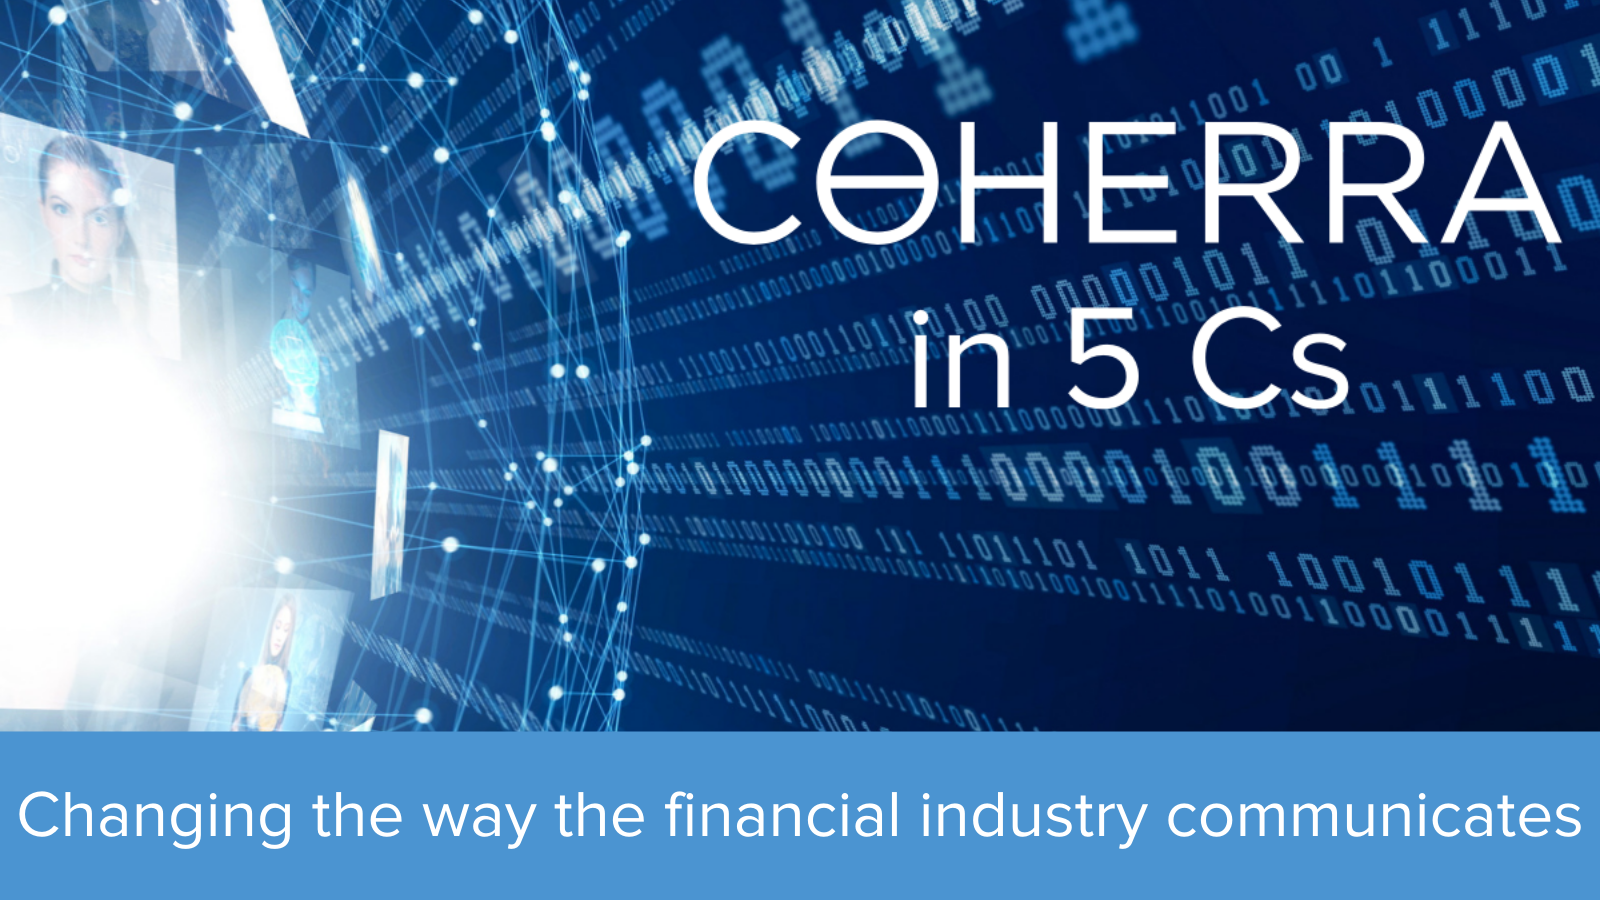 Changing the way the financial industry communicates:  Coherra in 5 Cs